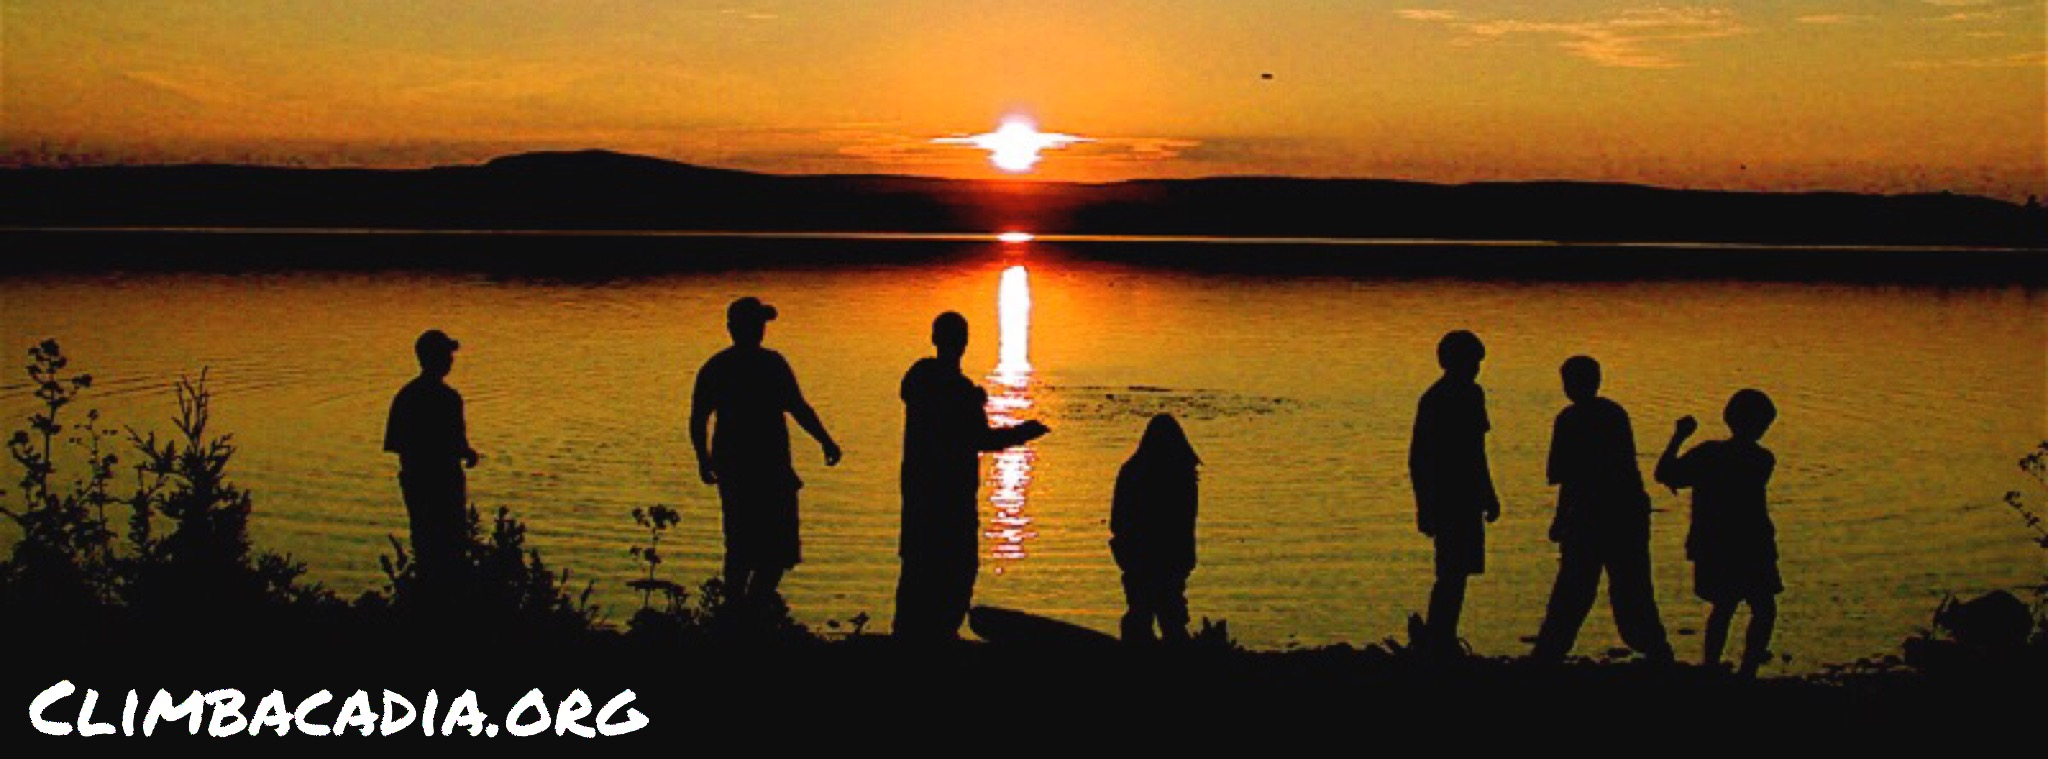 Acadia Mountain Guides Summer Camp Alpenglow Adventure